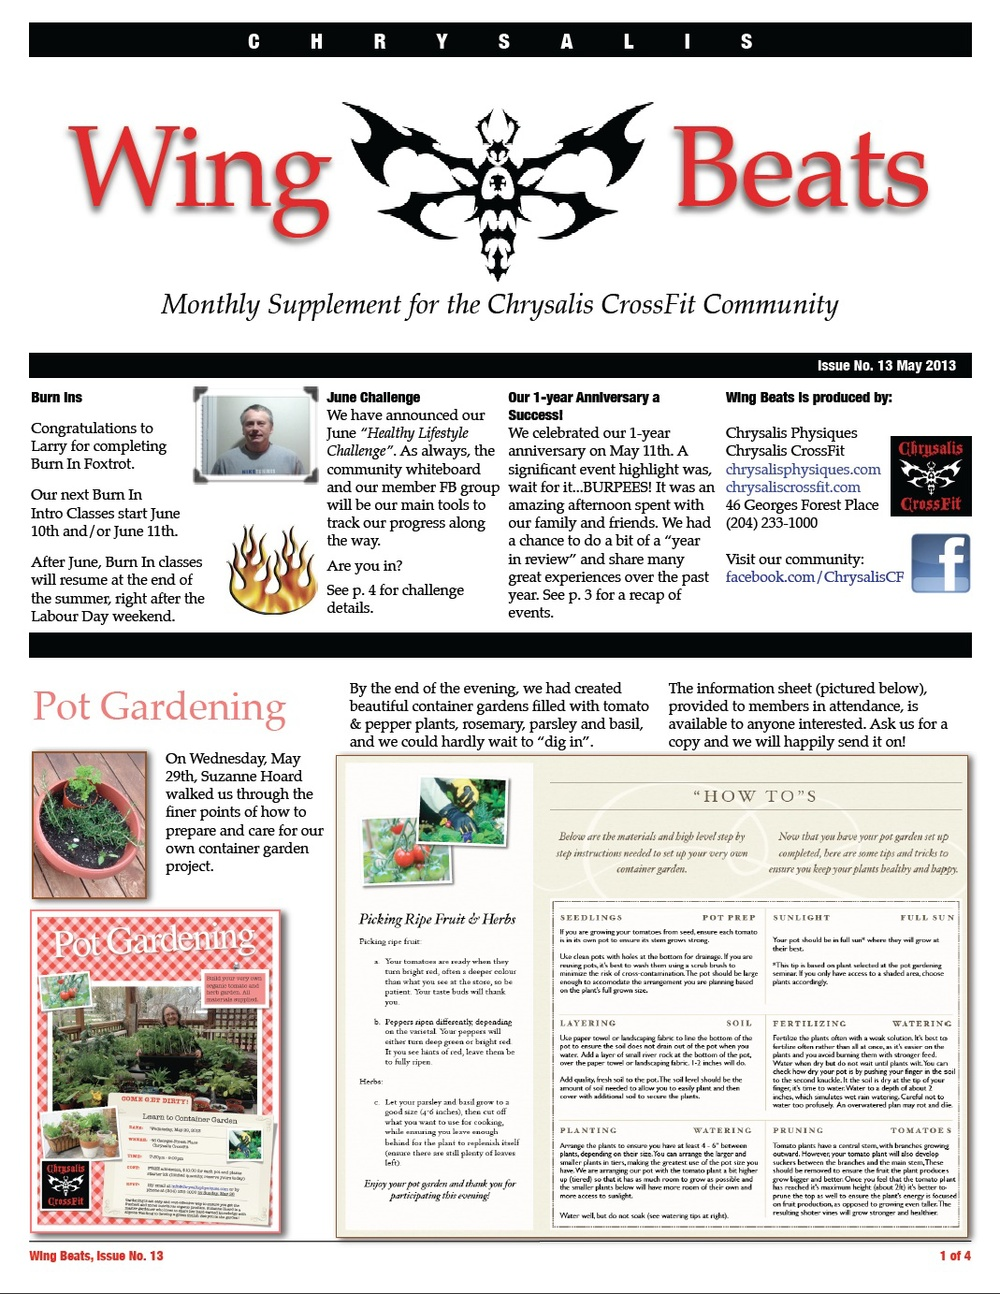 WingBeats Issue #13 - May 2013